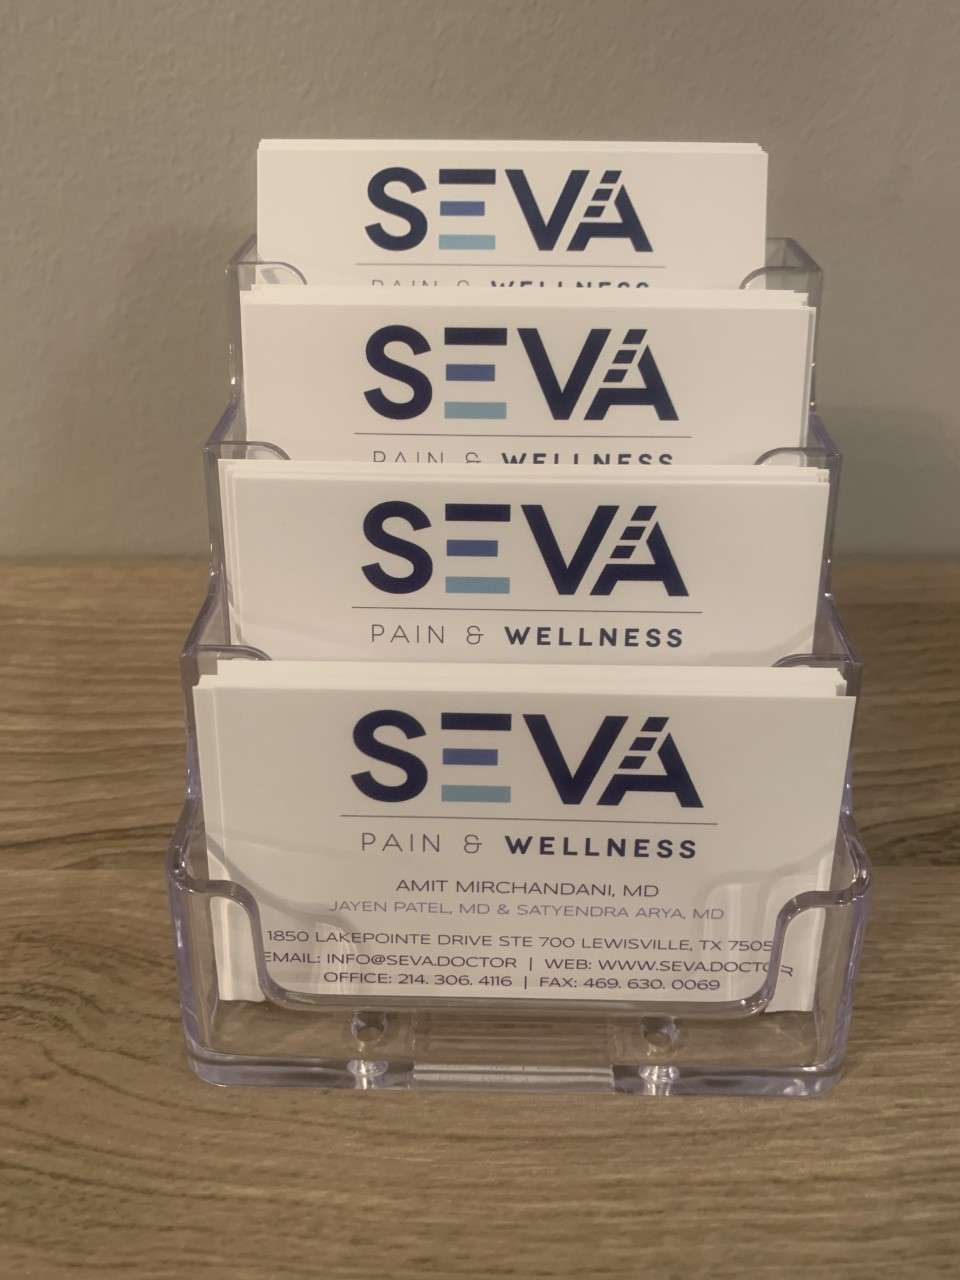 SEVA Pain & Wellness - hospital  | Photo 10 of 10 | Address: 1850 Lakepointe Dr Suite 700, Lewisville, TX 75057, USA | Phone: (214) 306-4116